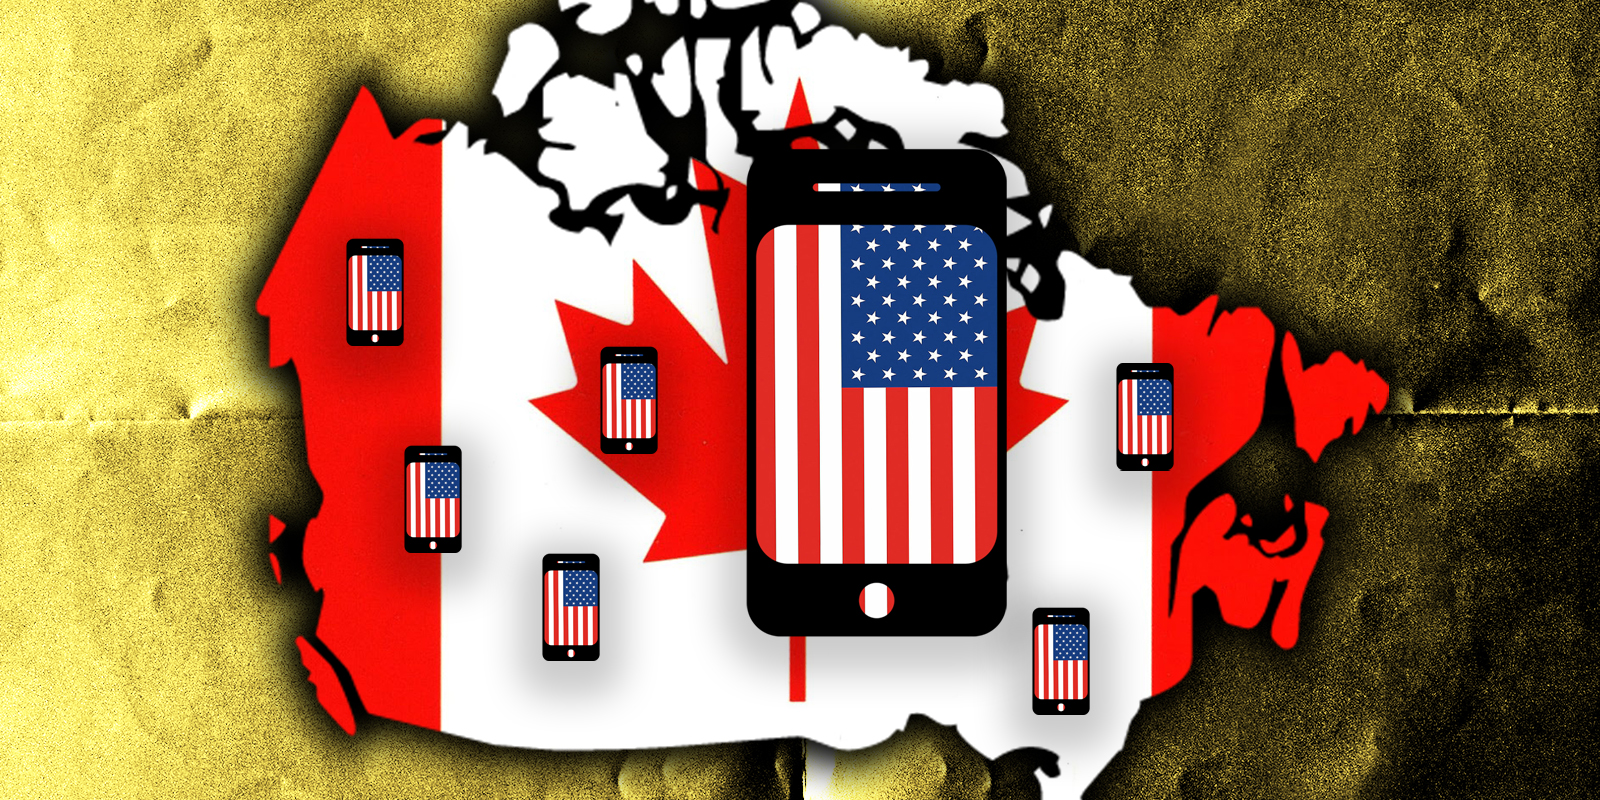 Canadians are avoiding Bell, Telus and Rogers by getting U.S. phone plans